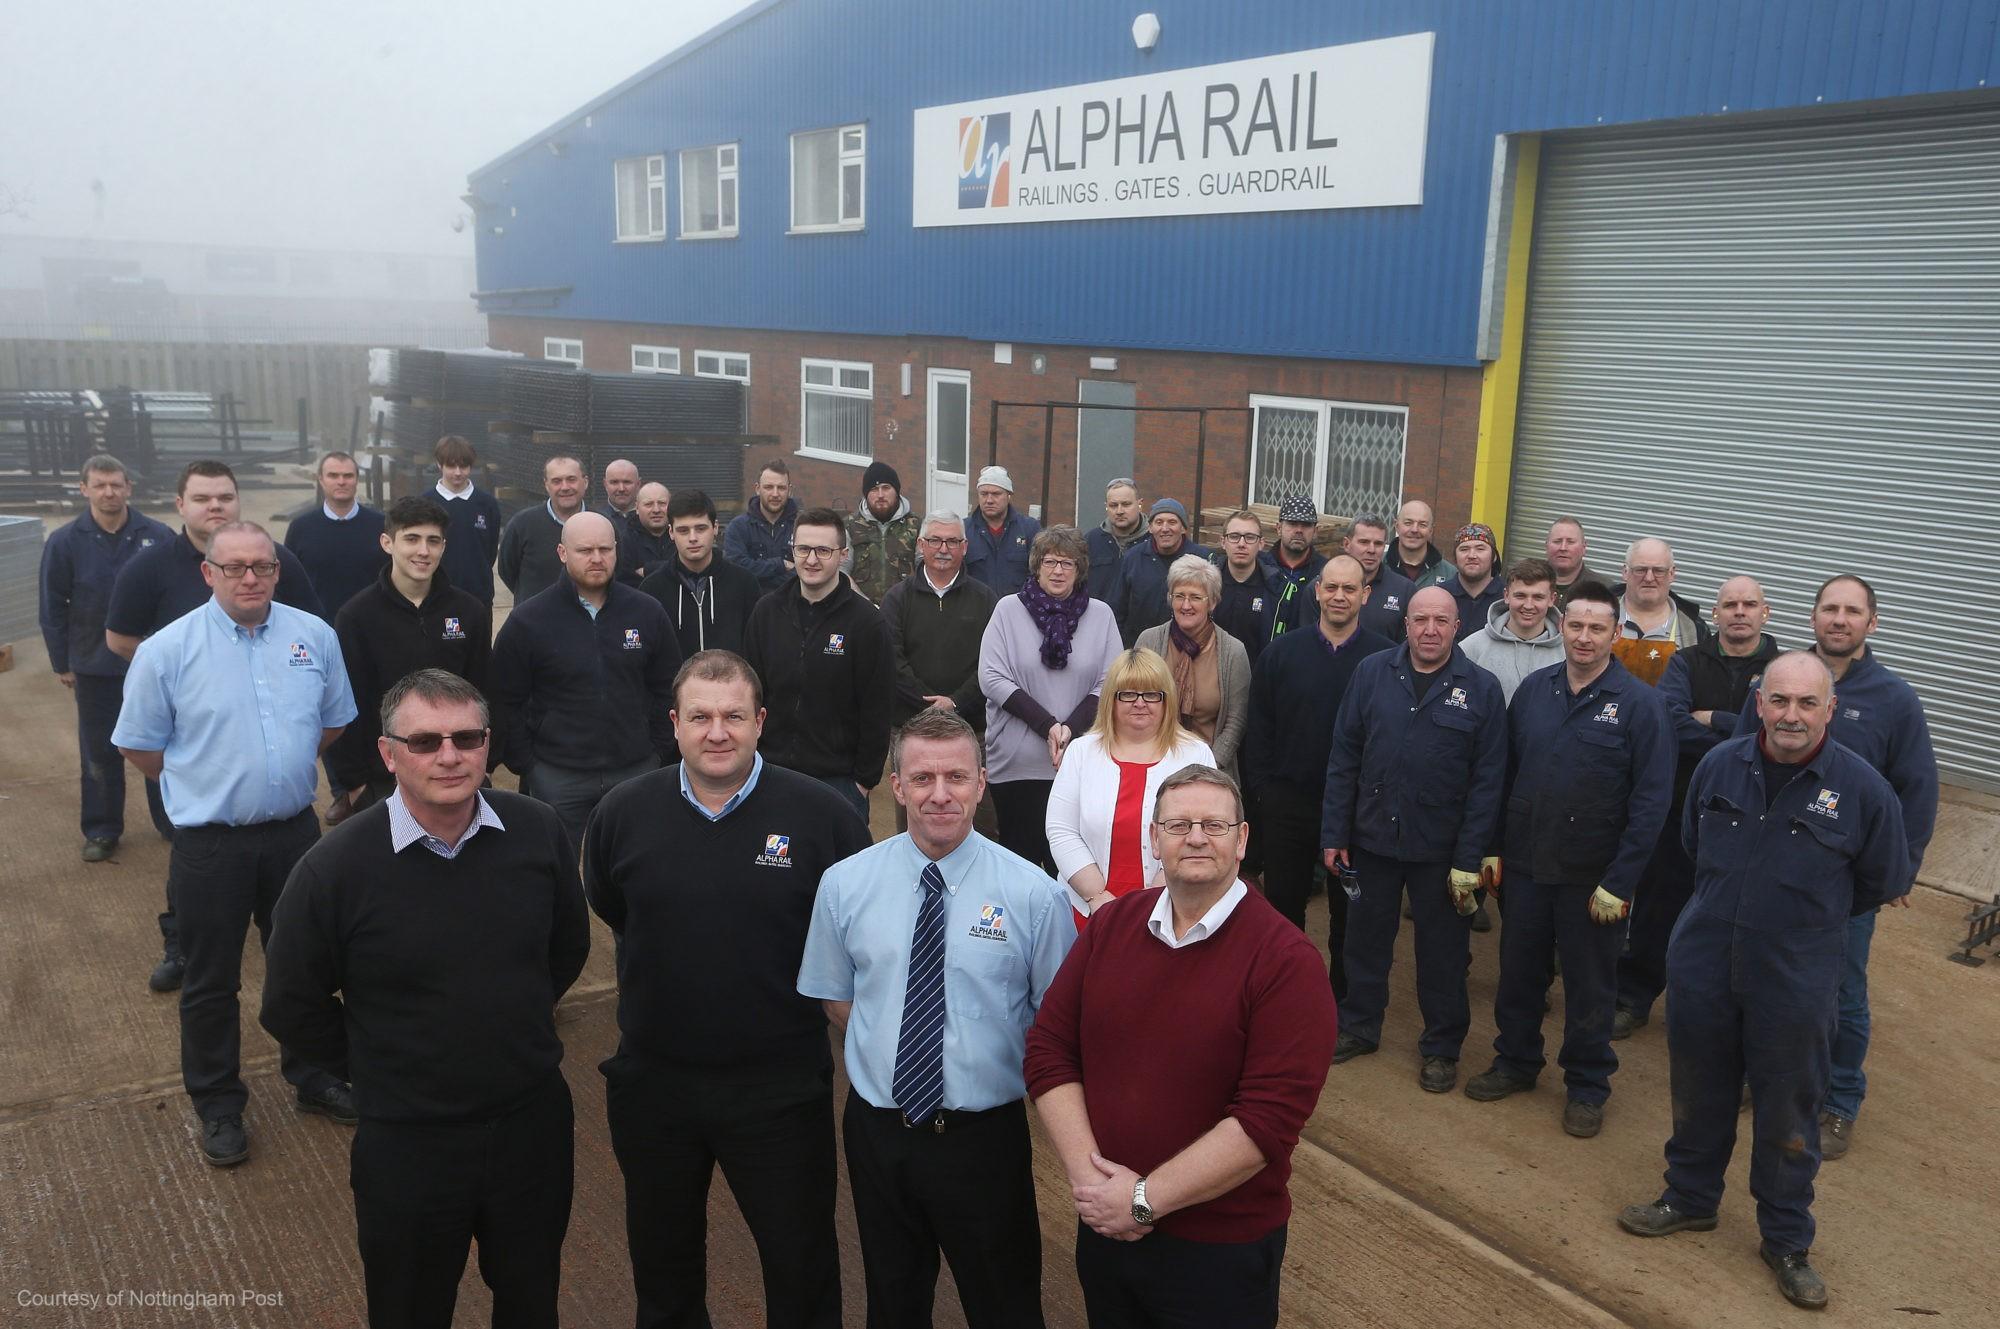 IN PICTURE: Staff at Alpha Rail in Huthwaite.  Pictured front l-r is directors Phil Ball, Dean Briggs, Mark Sipson and Steve Shirley. Pics at the new Alpha Rail headquarters, and with the main directors and of some staff.  The company is one of the UK's biggest manufacturers of metal railings and gates, and has moved from its previous home in Kirkby-in-Ashfield after outgrowing the premises.  Booked by Dan Robinson  Contact is: Phil Ball Sales Director